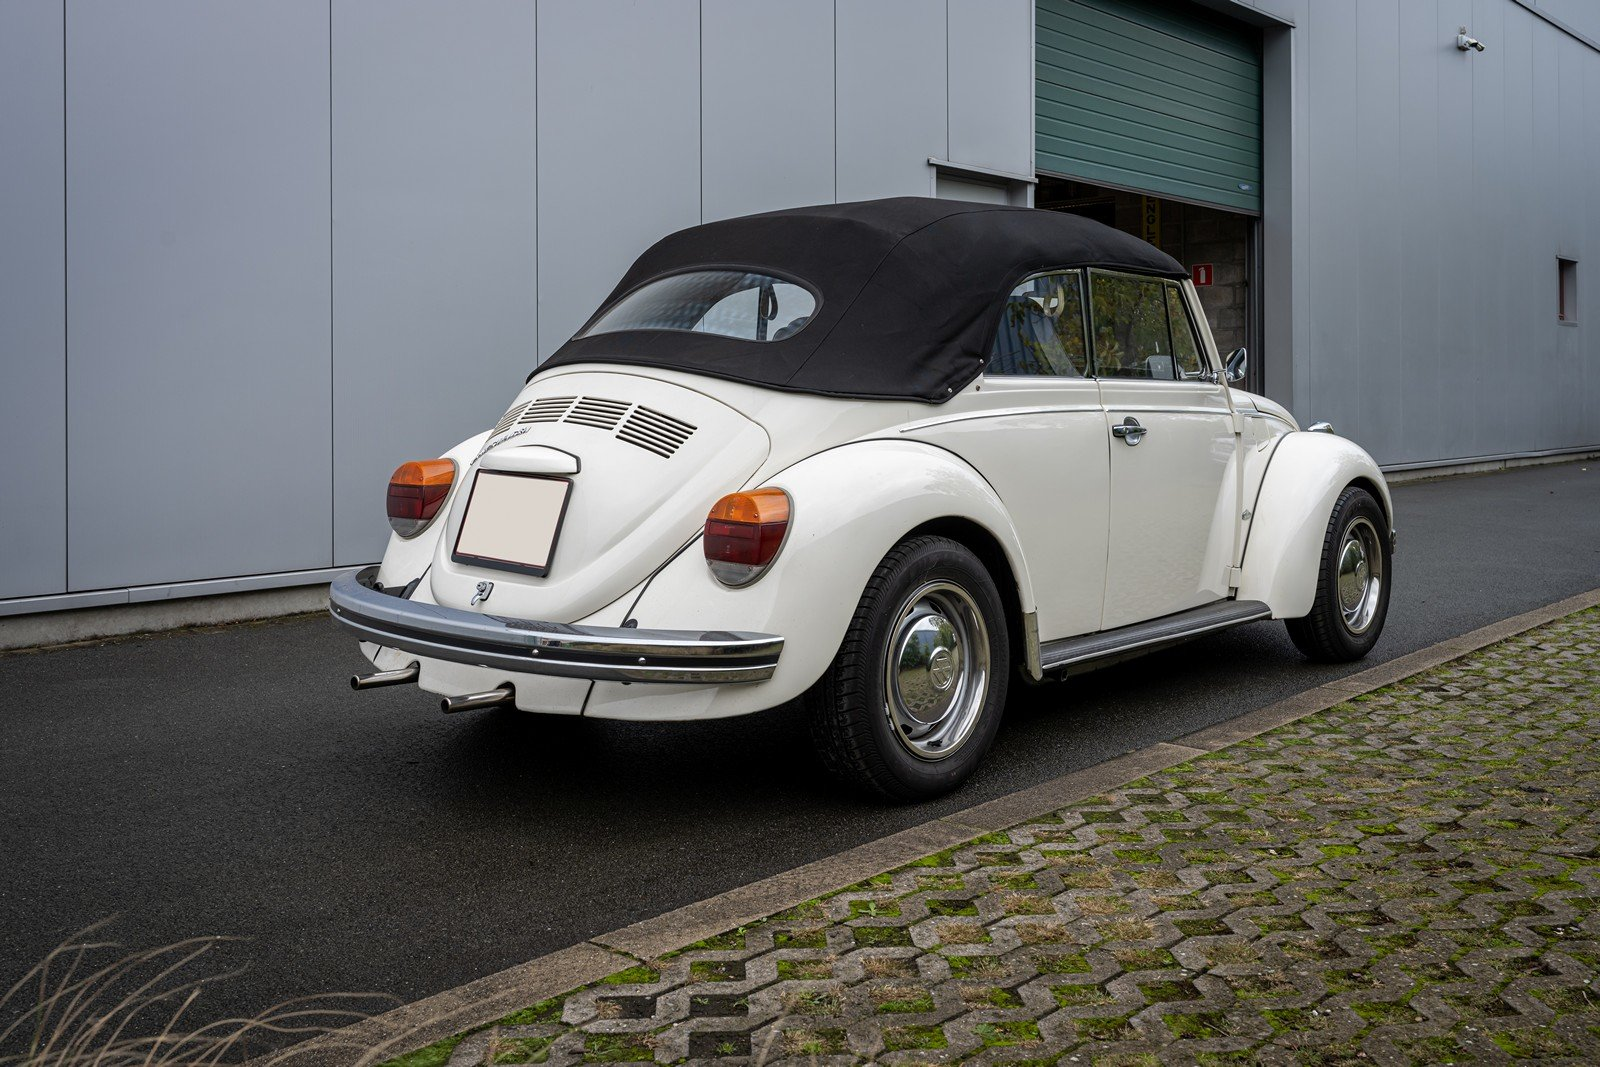 1973 Volkswagen Beetle Type 1303 Cabriolet For Sale (picture 9 of 39)